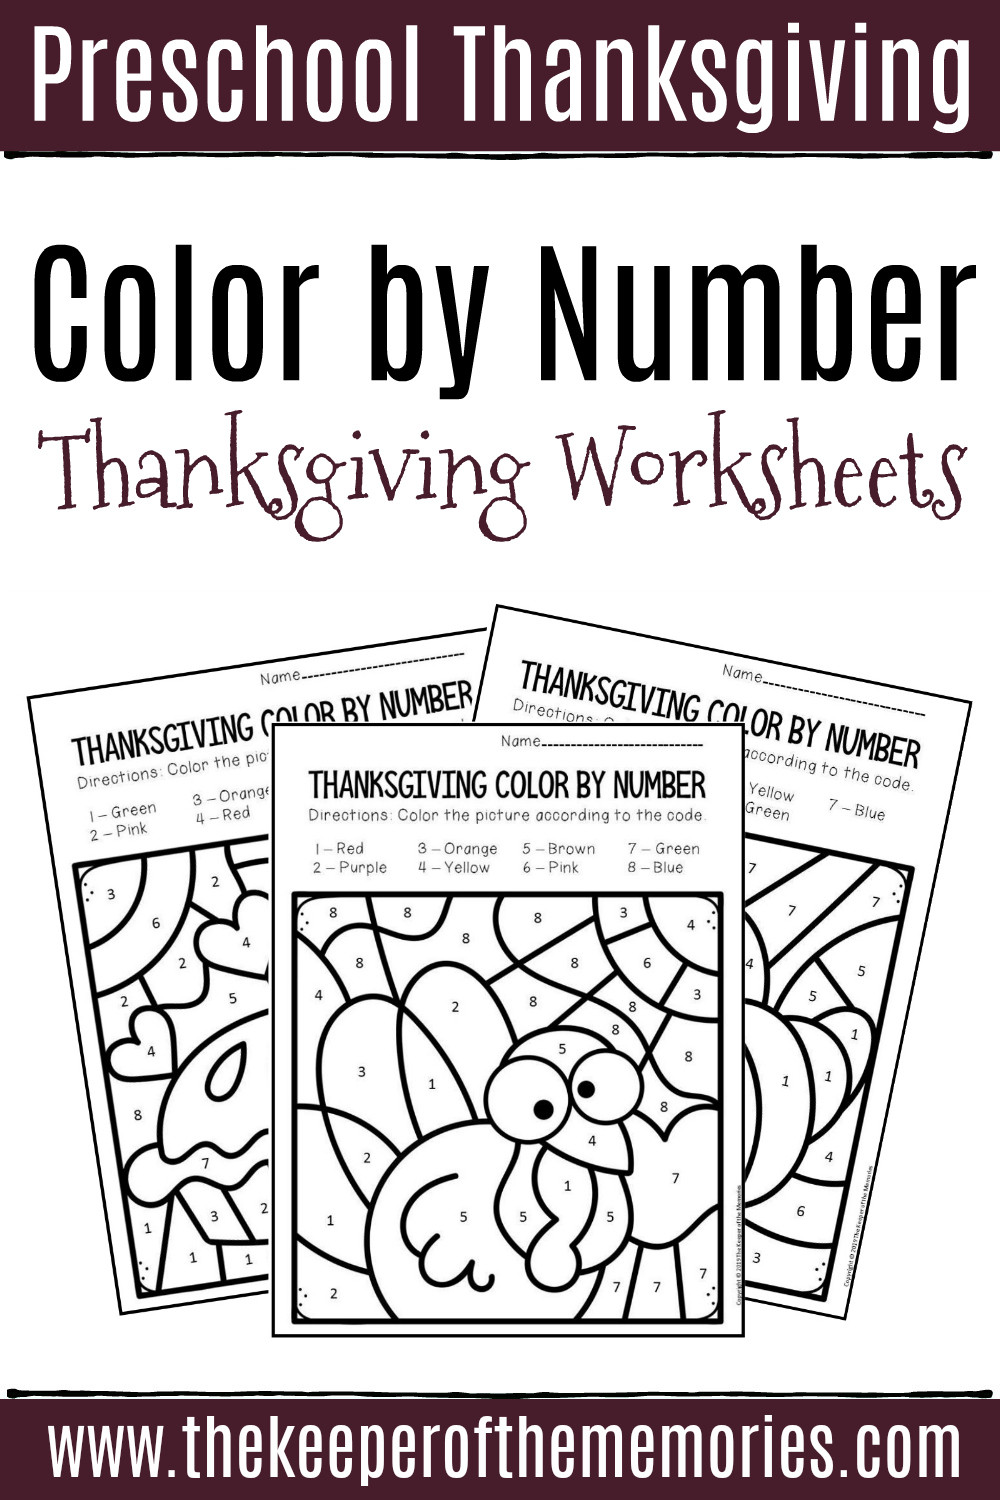 Color by Number Thanksgiving Worksheets Color by Number Thanksgiving Preschool Worksheets